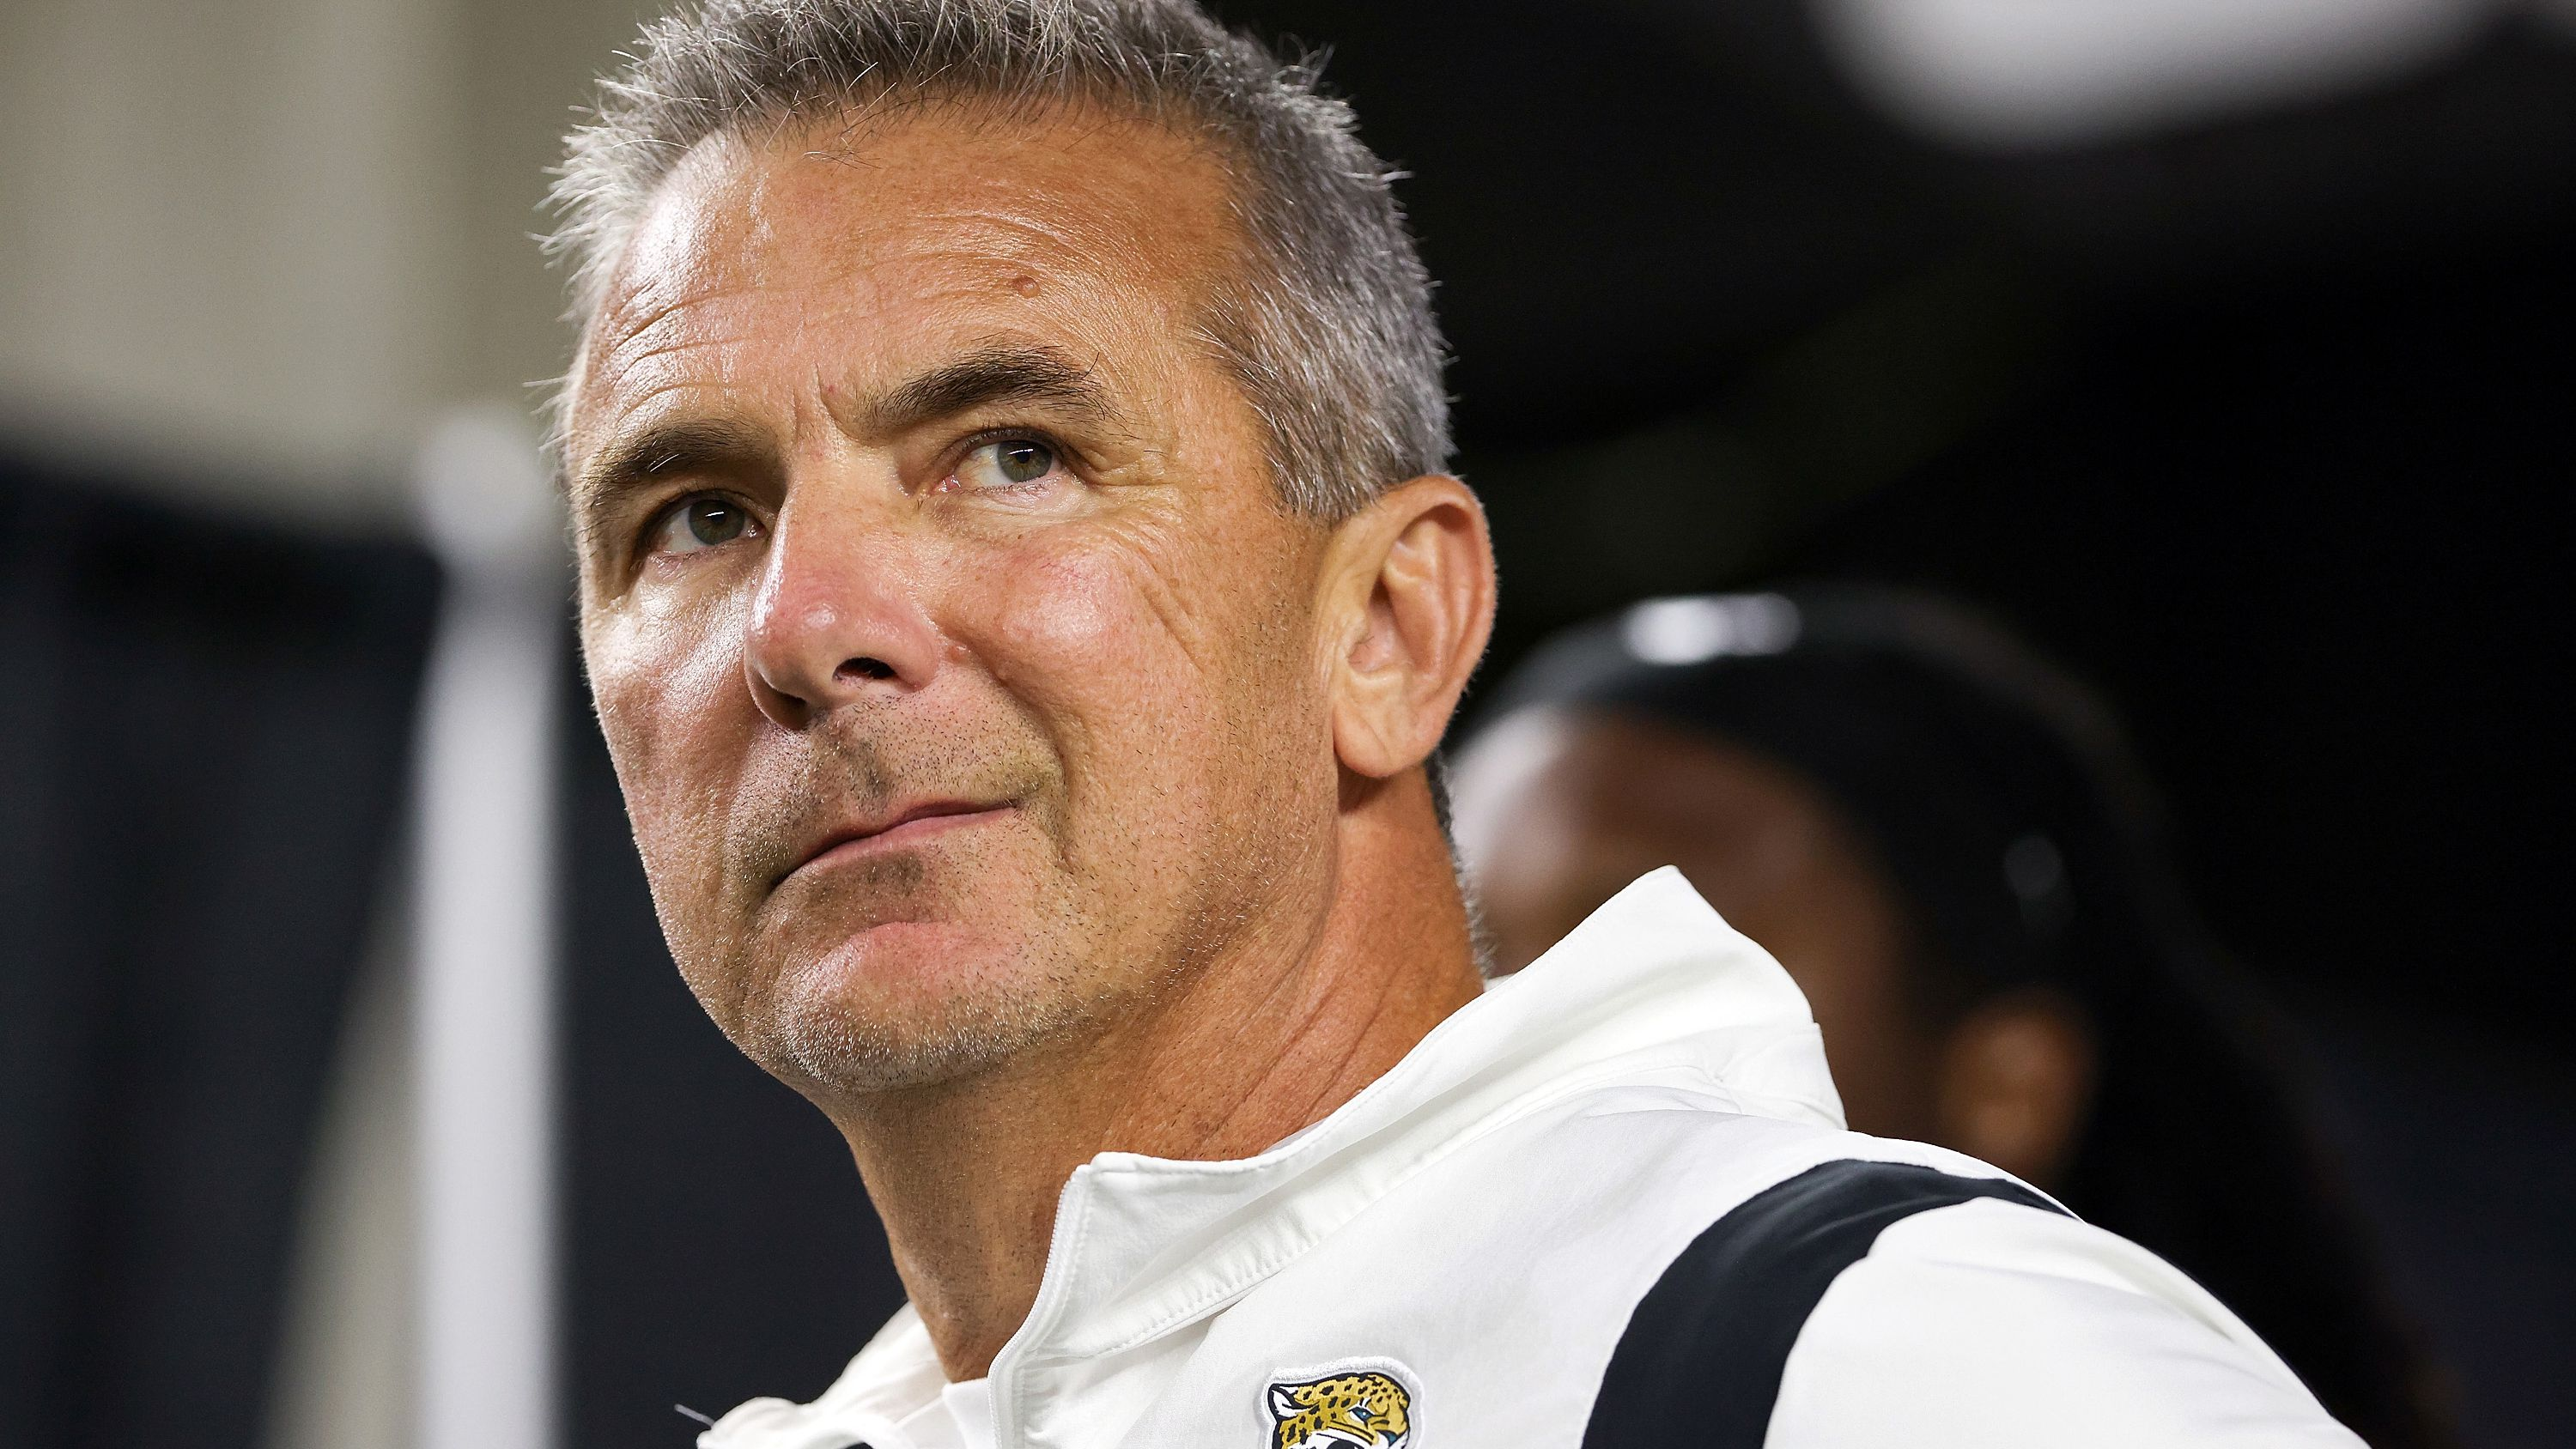 Urban Meyer's feisty response to question about wife over viral bar video